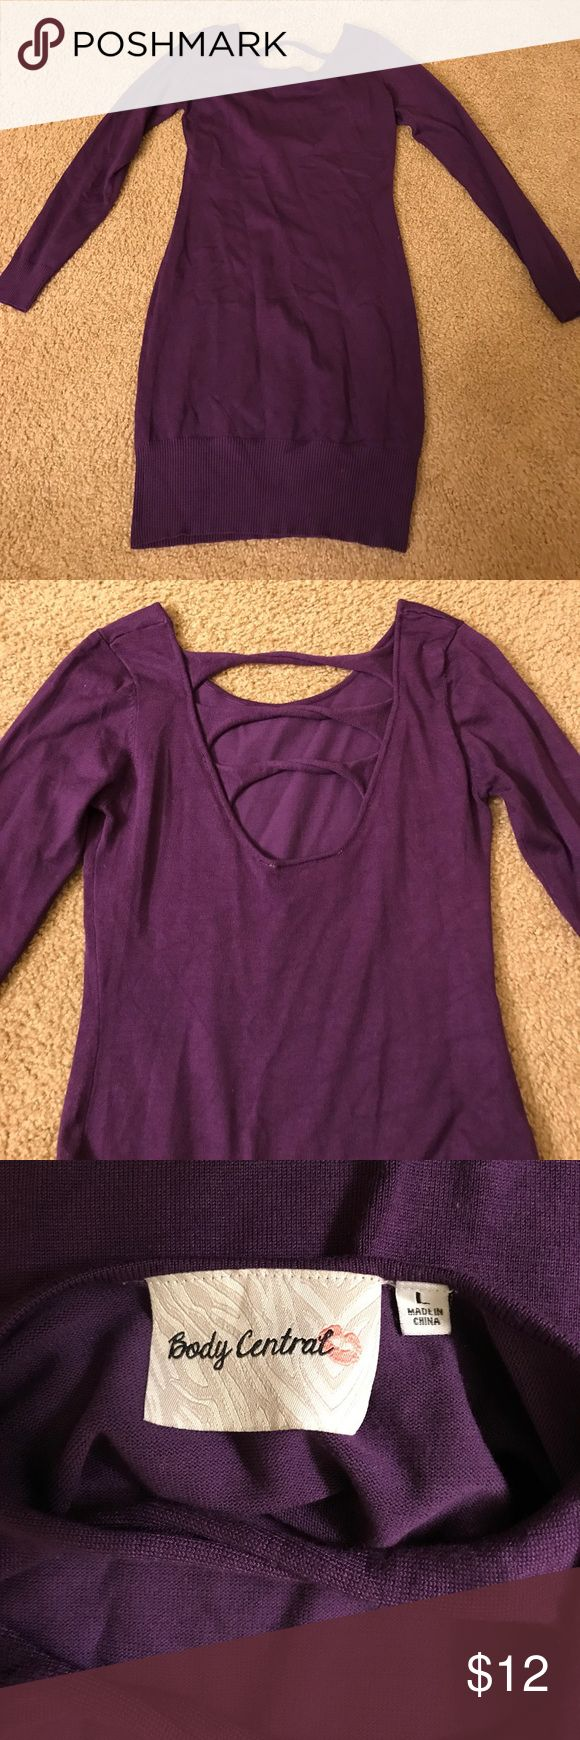 Body Central Purple Bodycon Sweater Purple bodycon sweater dress from Body Central. Size Large, worn once Body Central Sweaters